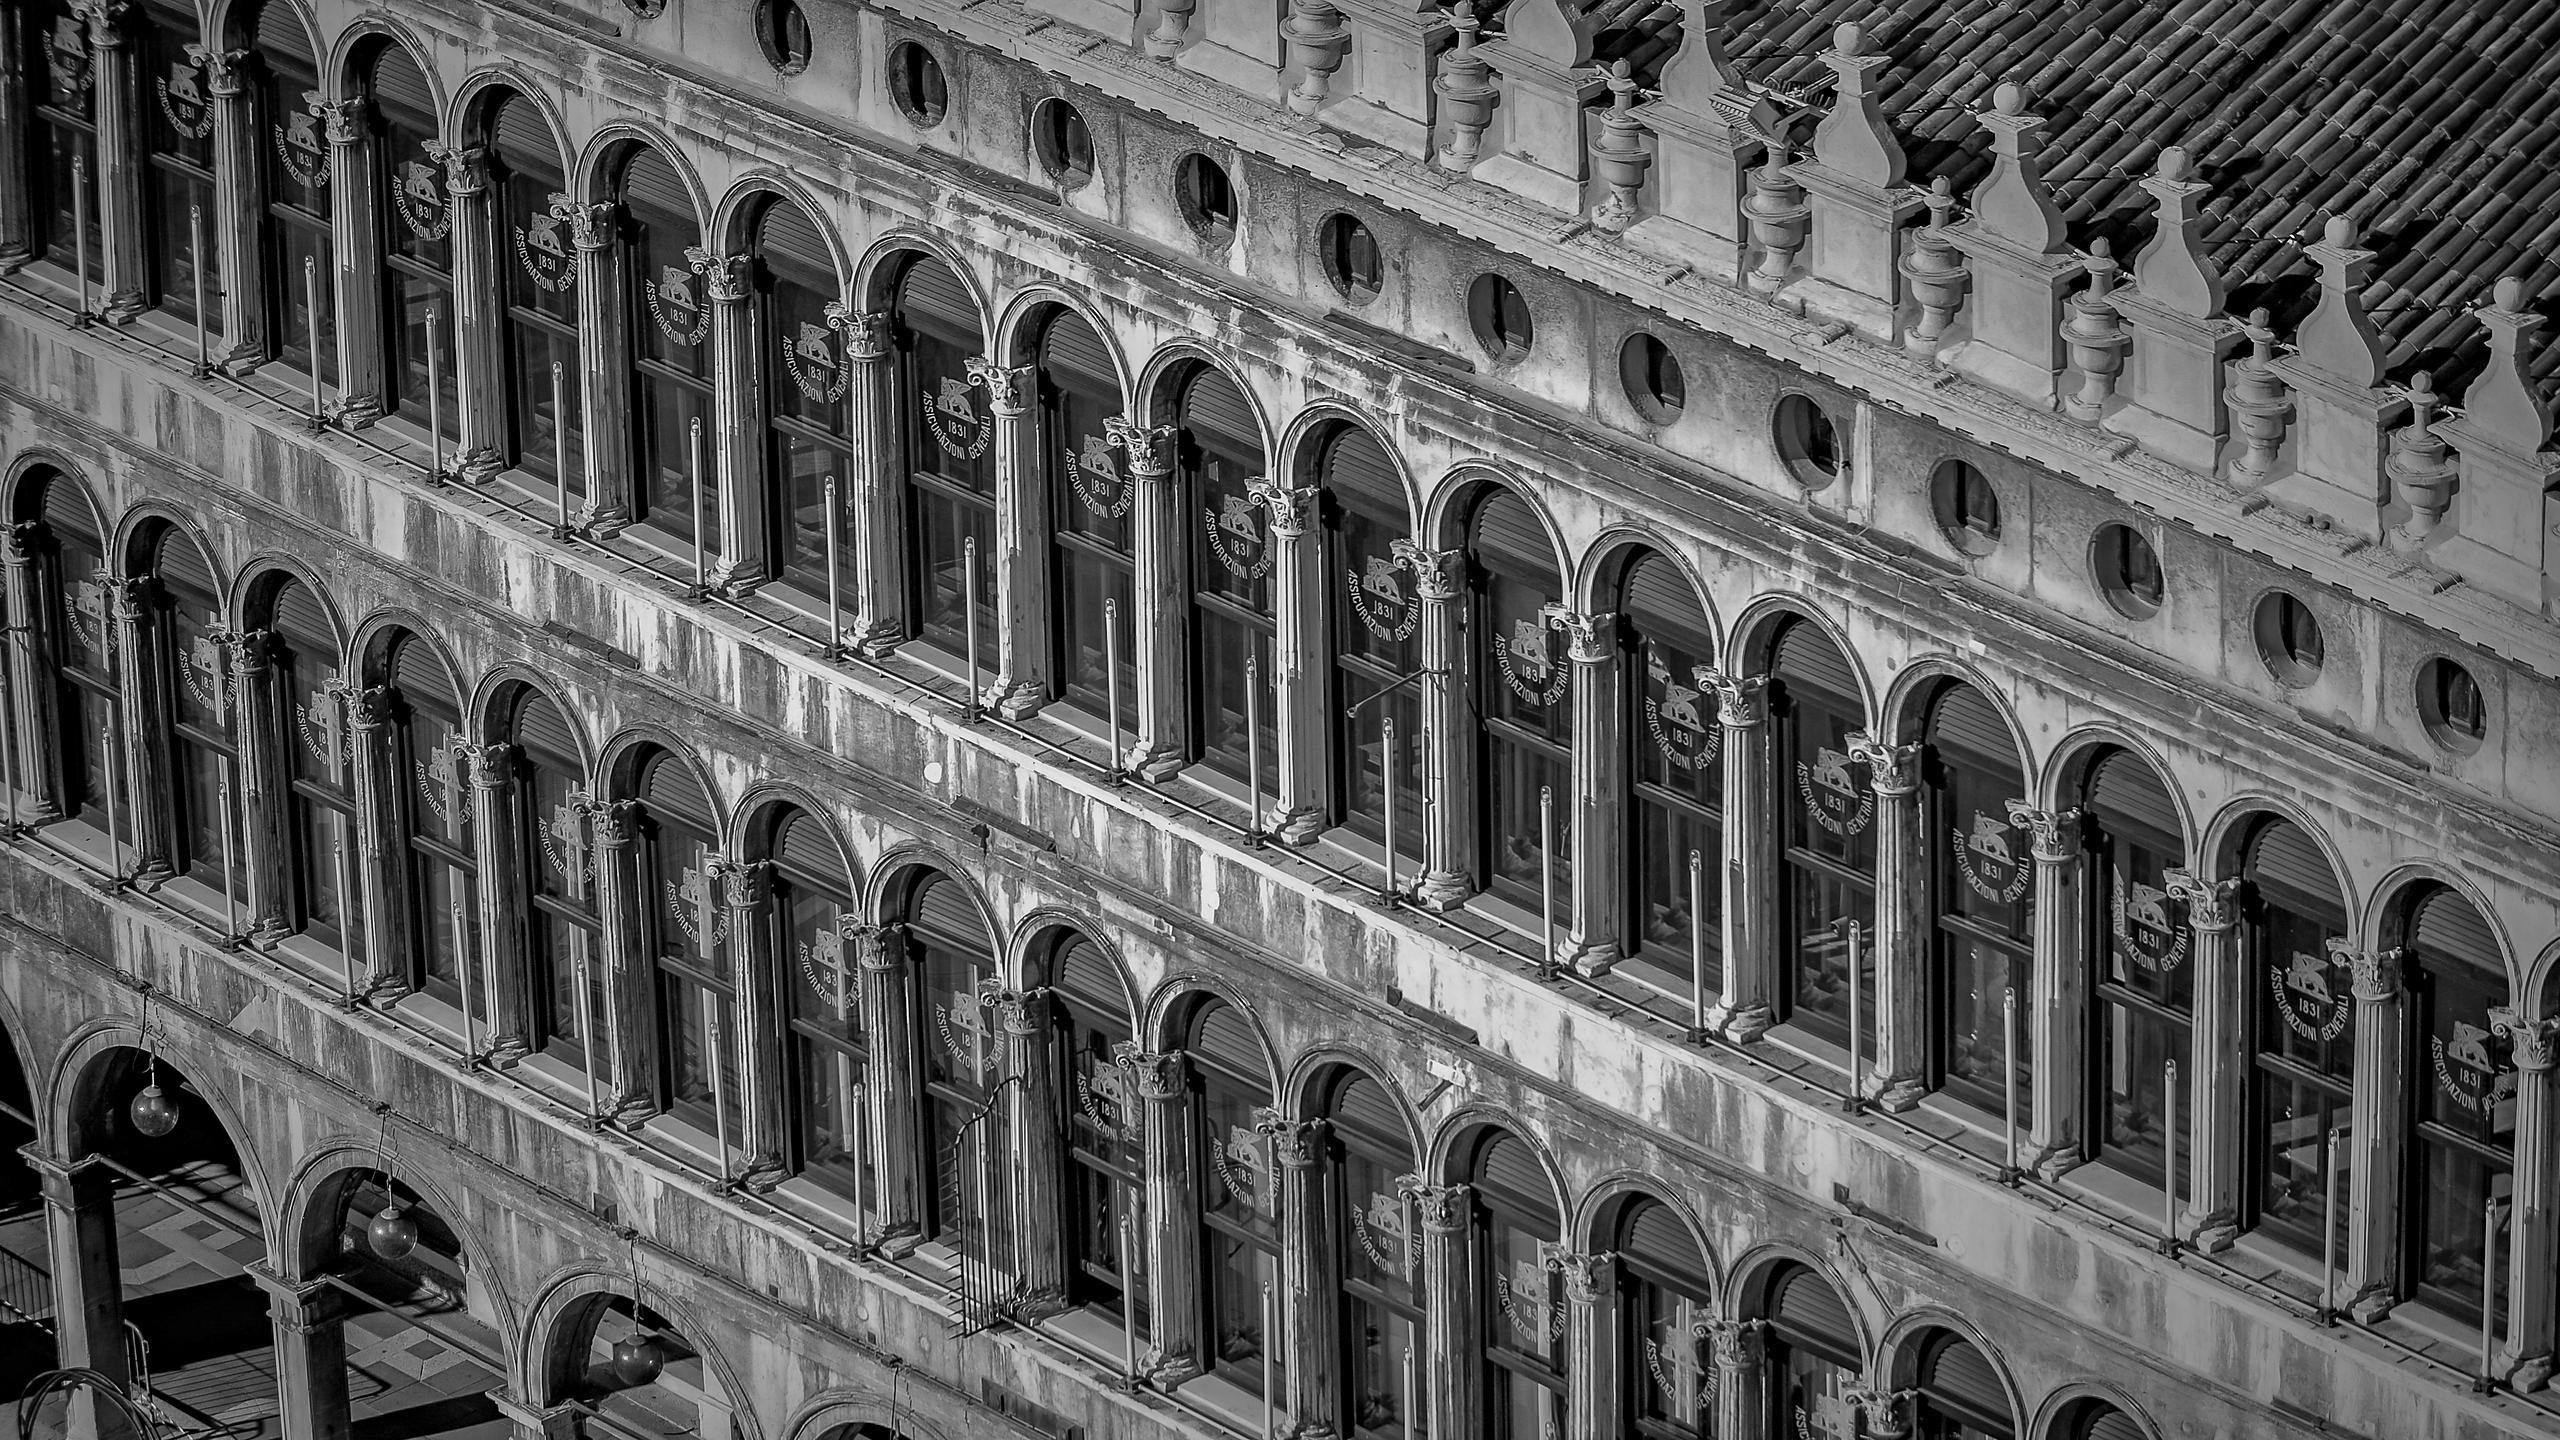 Detail View of the Procuratie Vecchie in Piazza San Marco, Venice